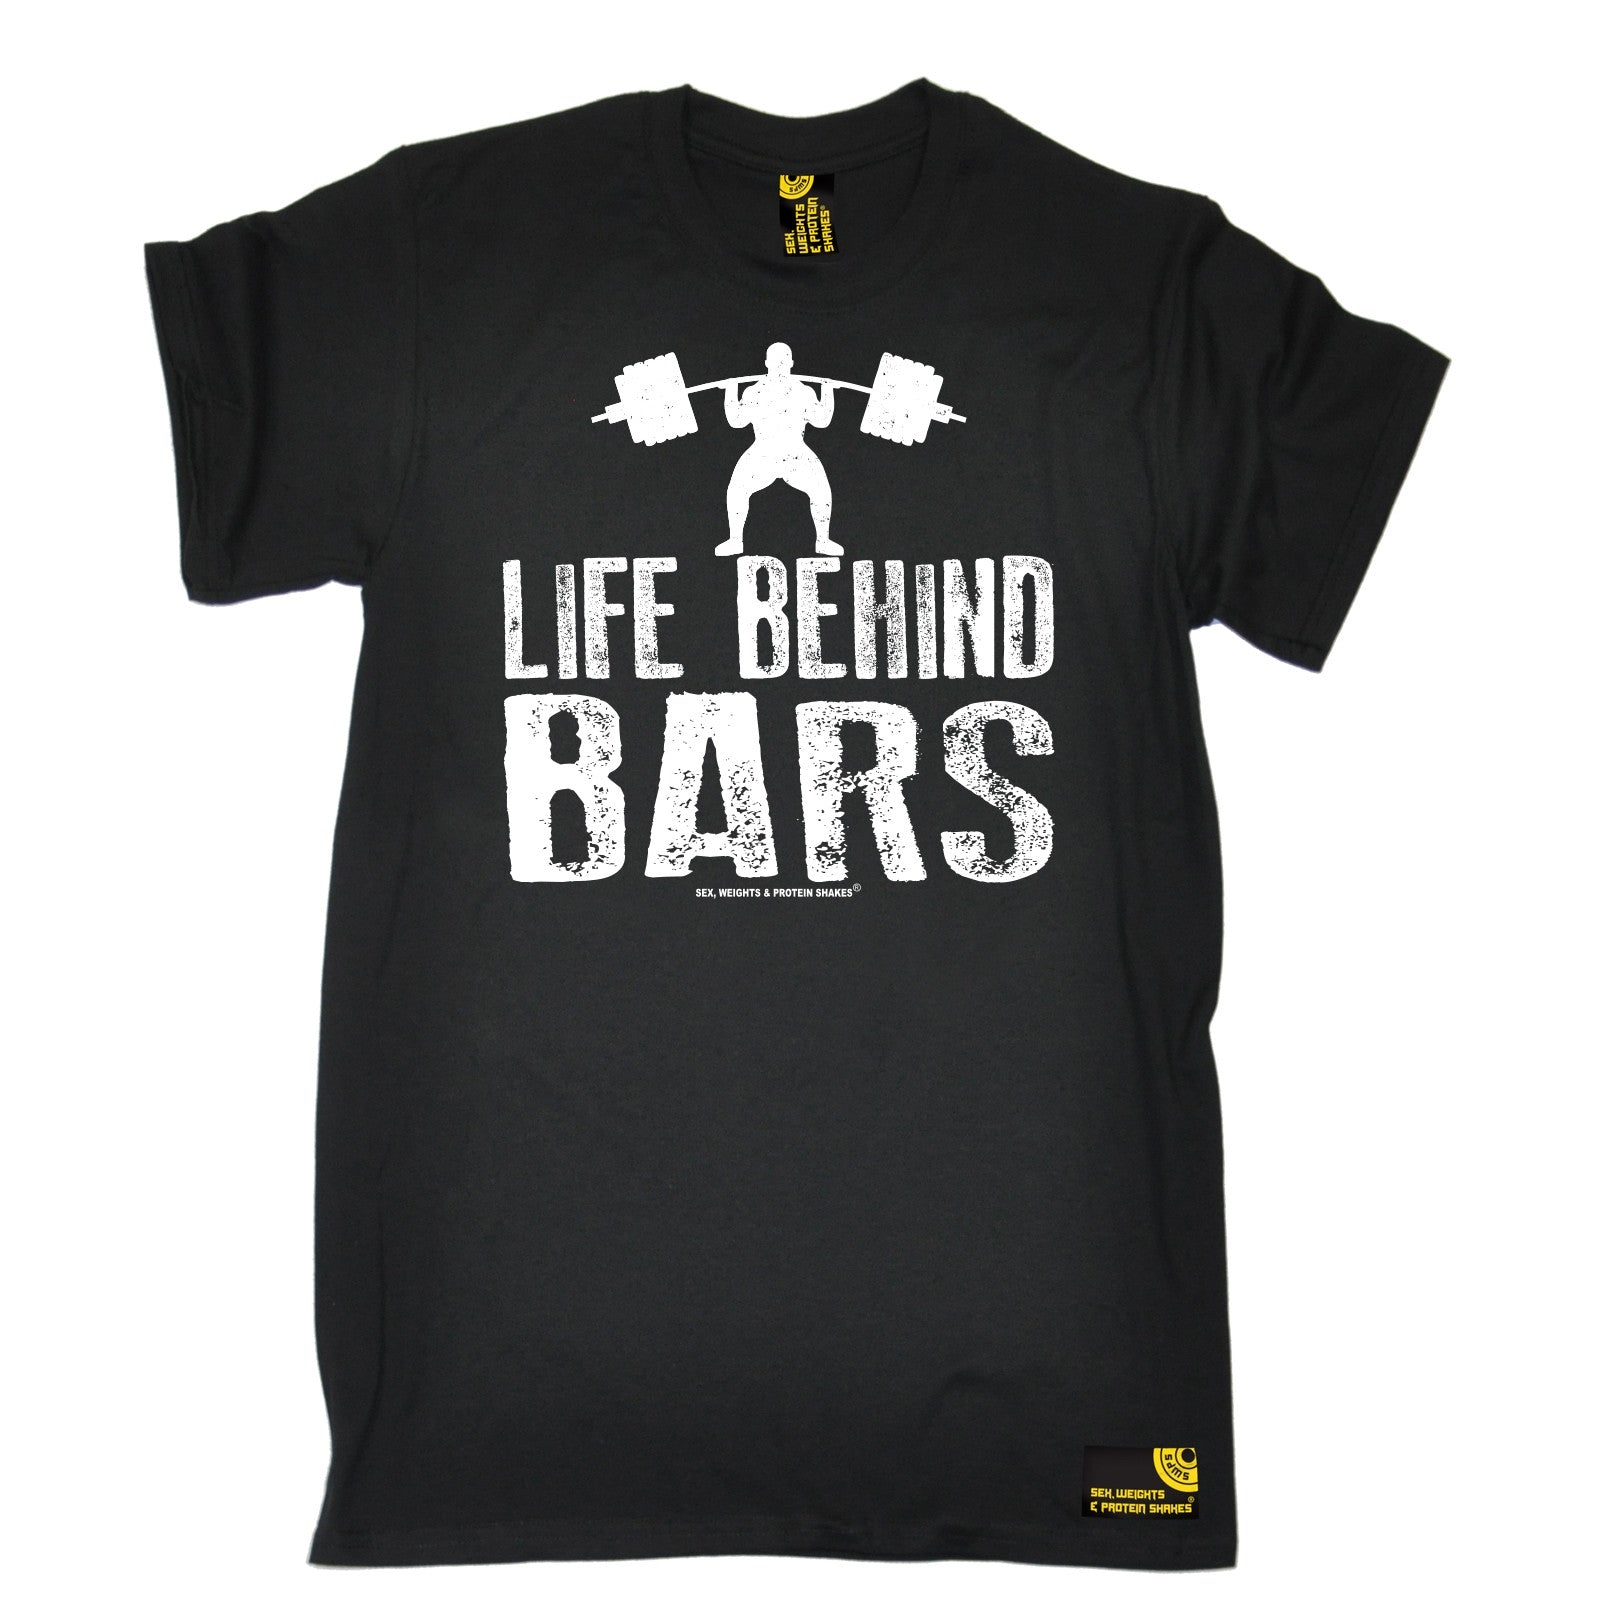 life behind bars weight lifting t shirt tee bodybuilding. Black Bedroom Furniture Sets. Home Design Ideas